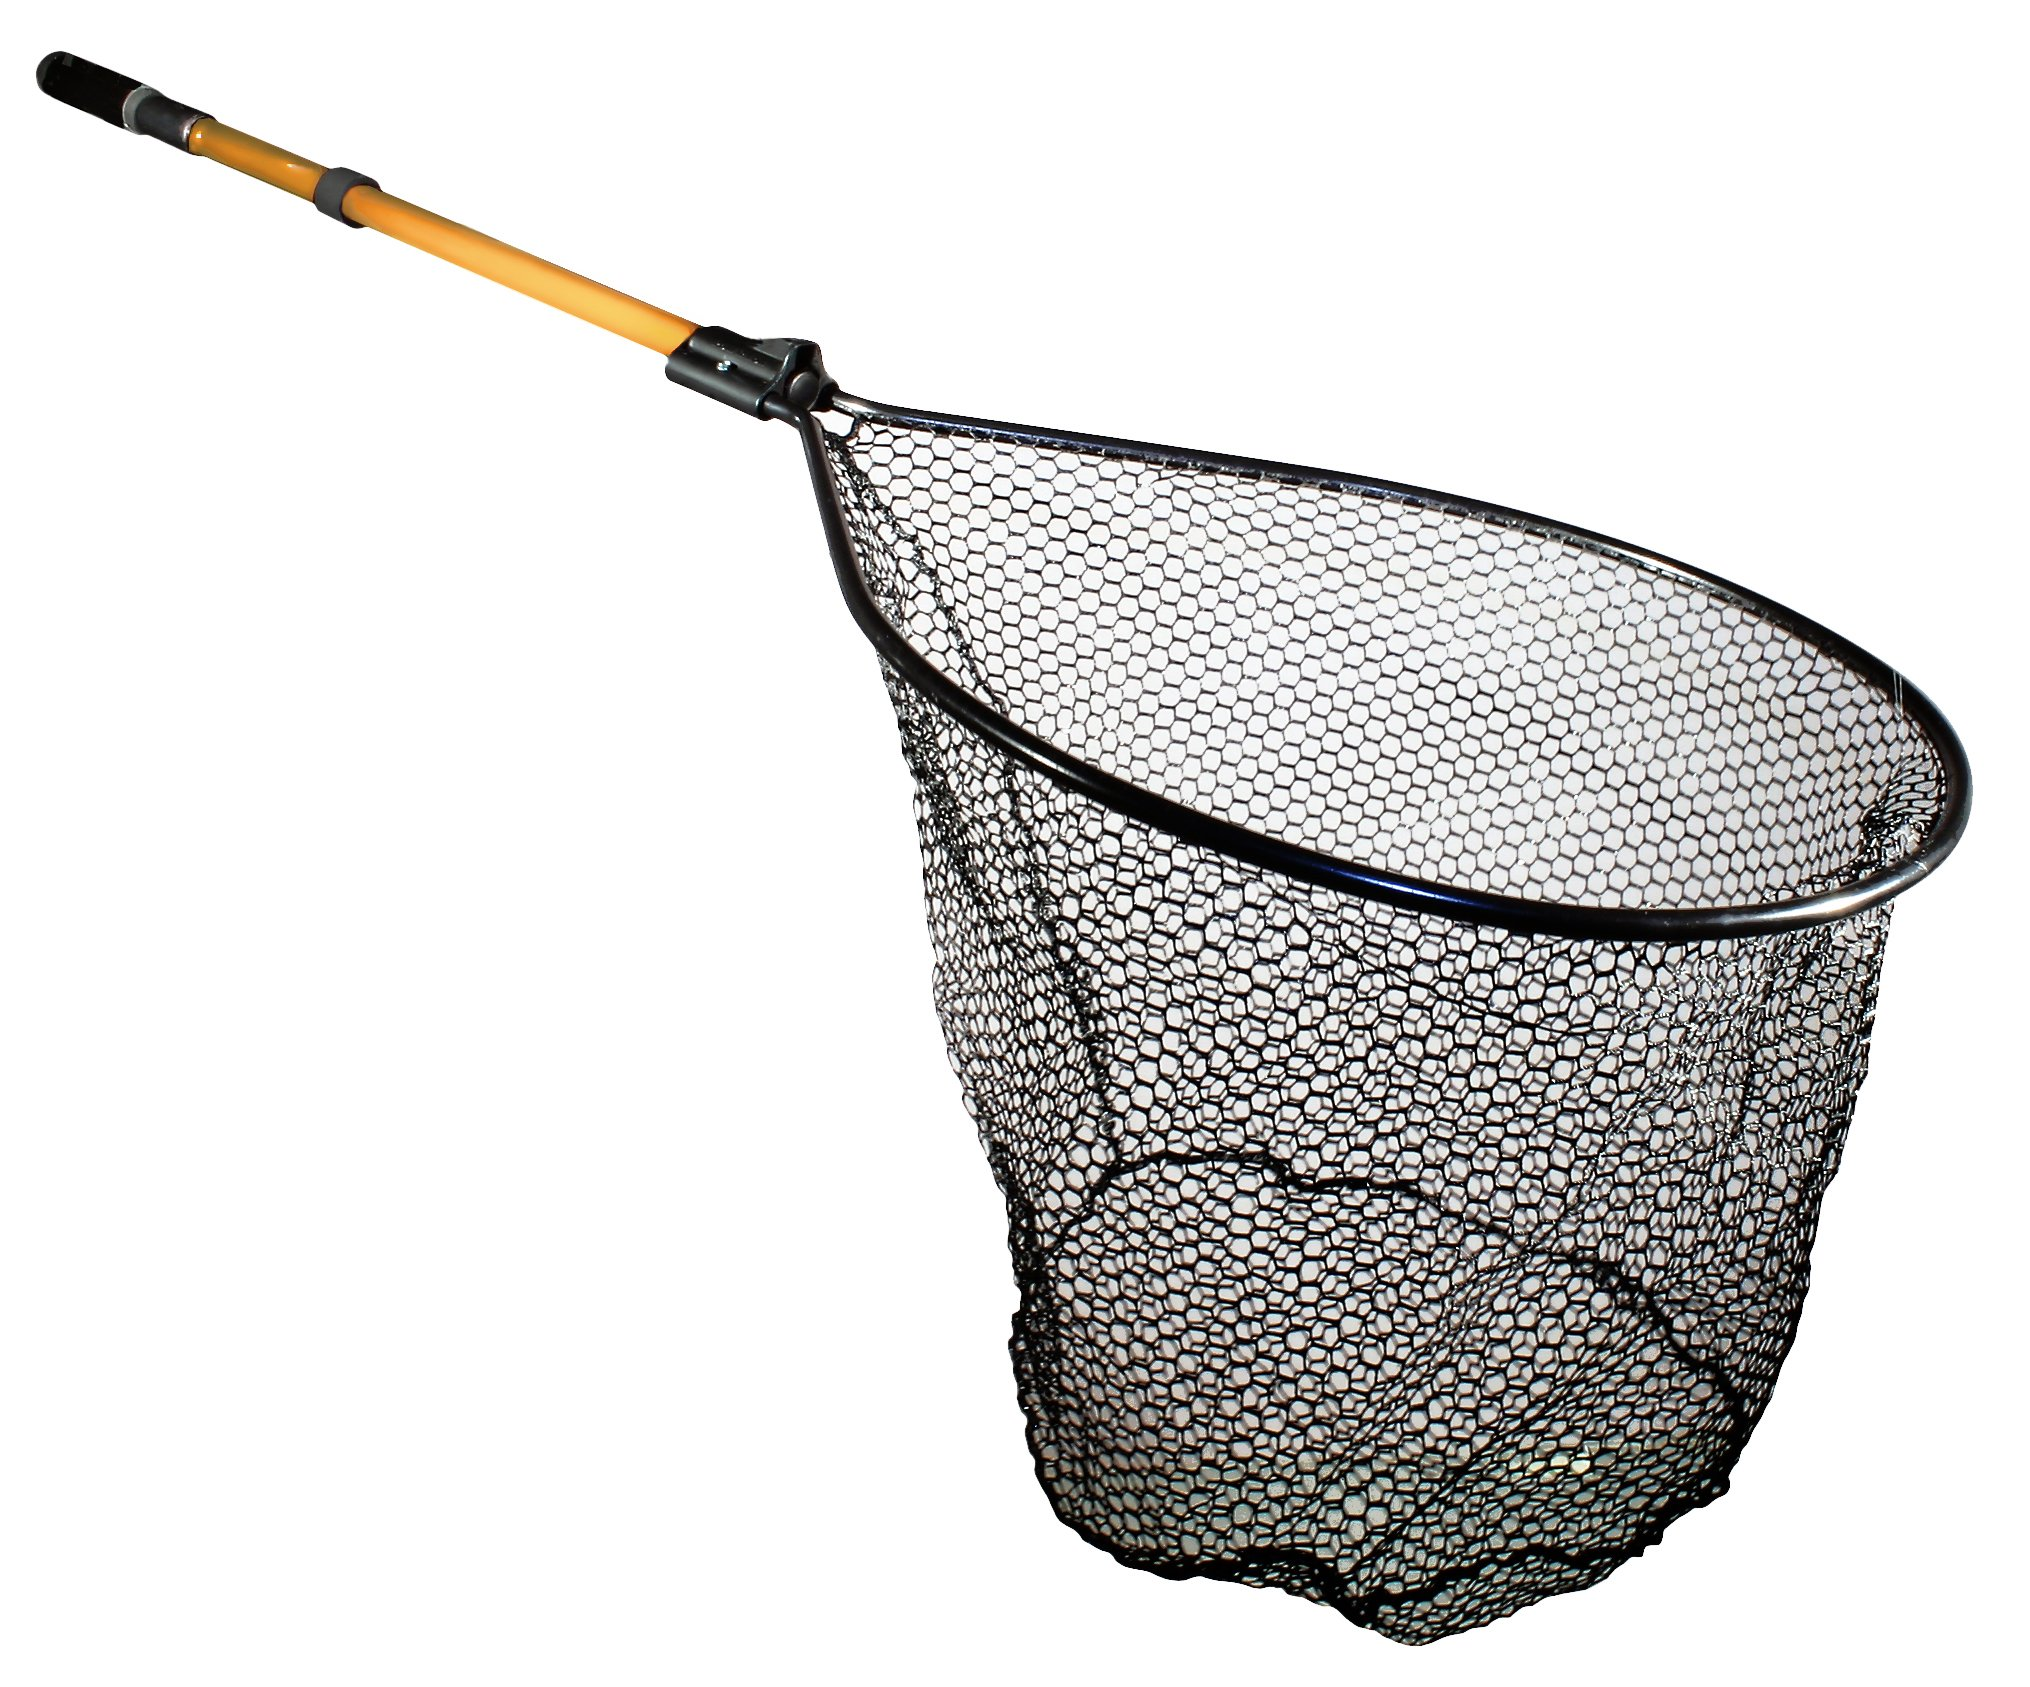 Frabill Conservation Series Landing Net with Camlock Reinforced Handle, 20 X 23-Inch, Premium Landing Net